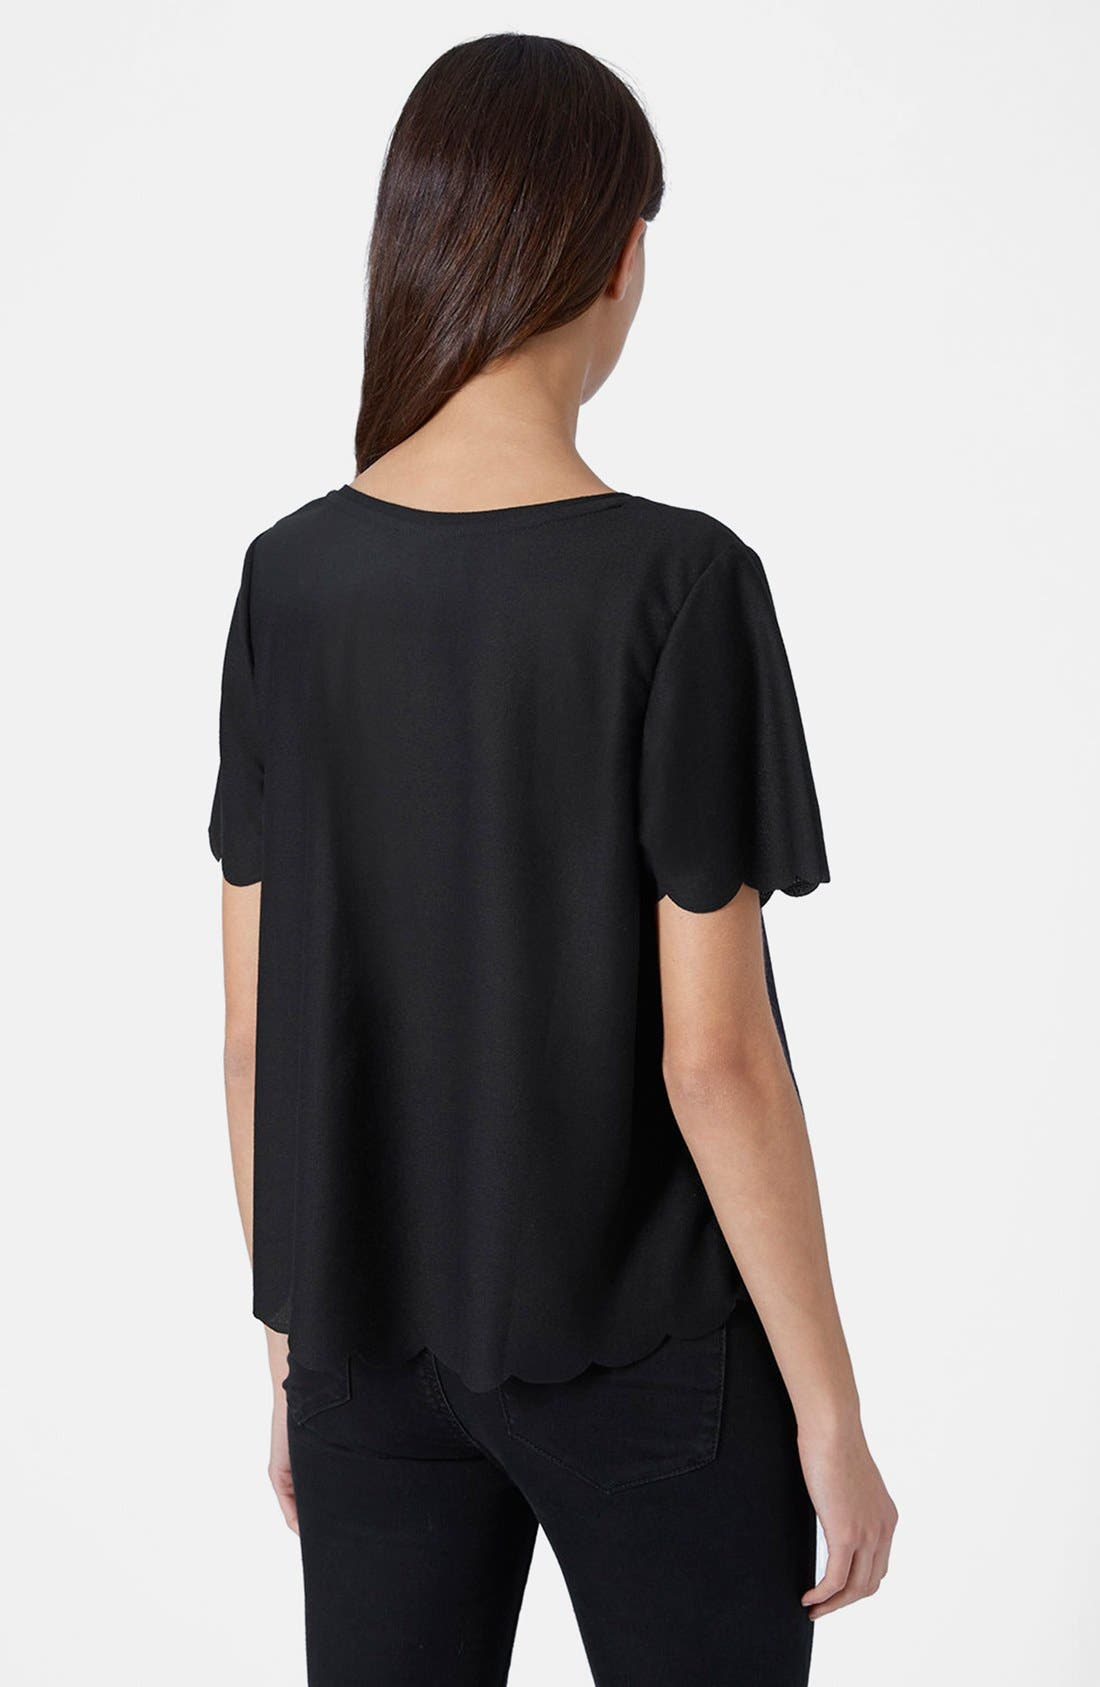 TOPSHOP, Scallop Frill Tee, Alternate thumbnail 3, color, 001